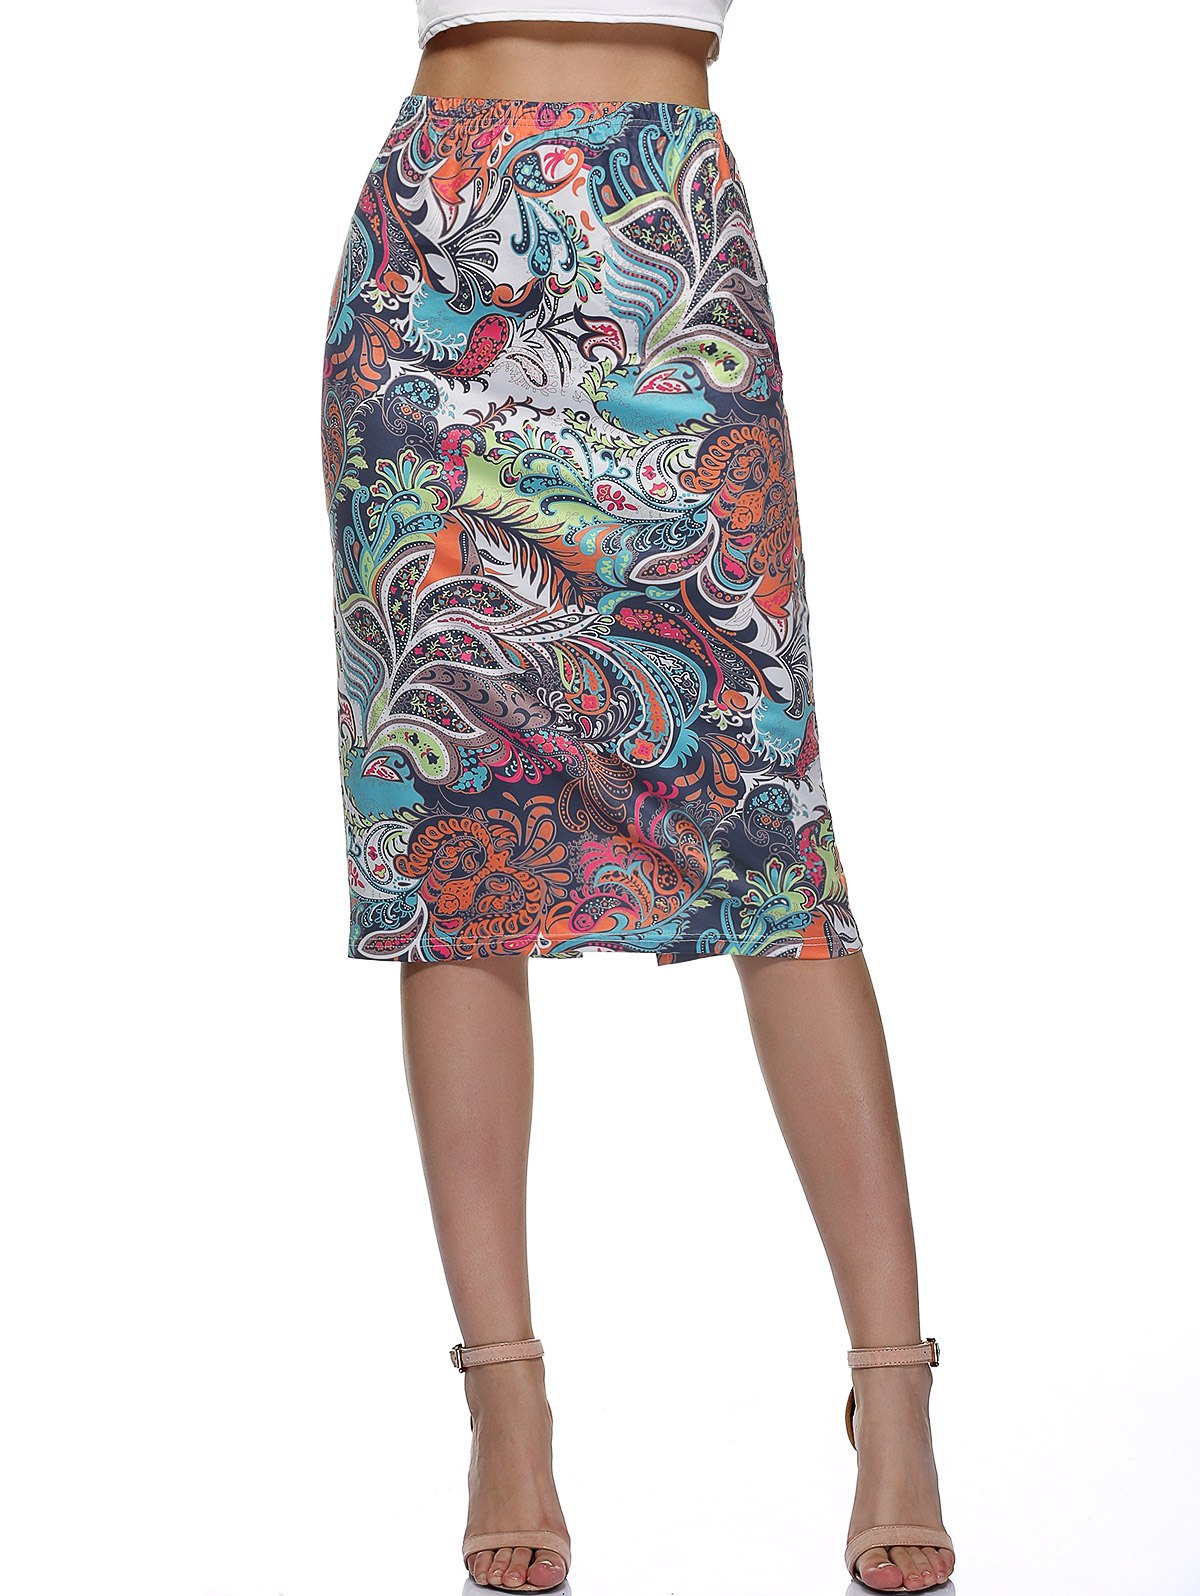 High Waist Back Slit Paisely Print Skirt - COLORMIX XL